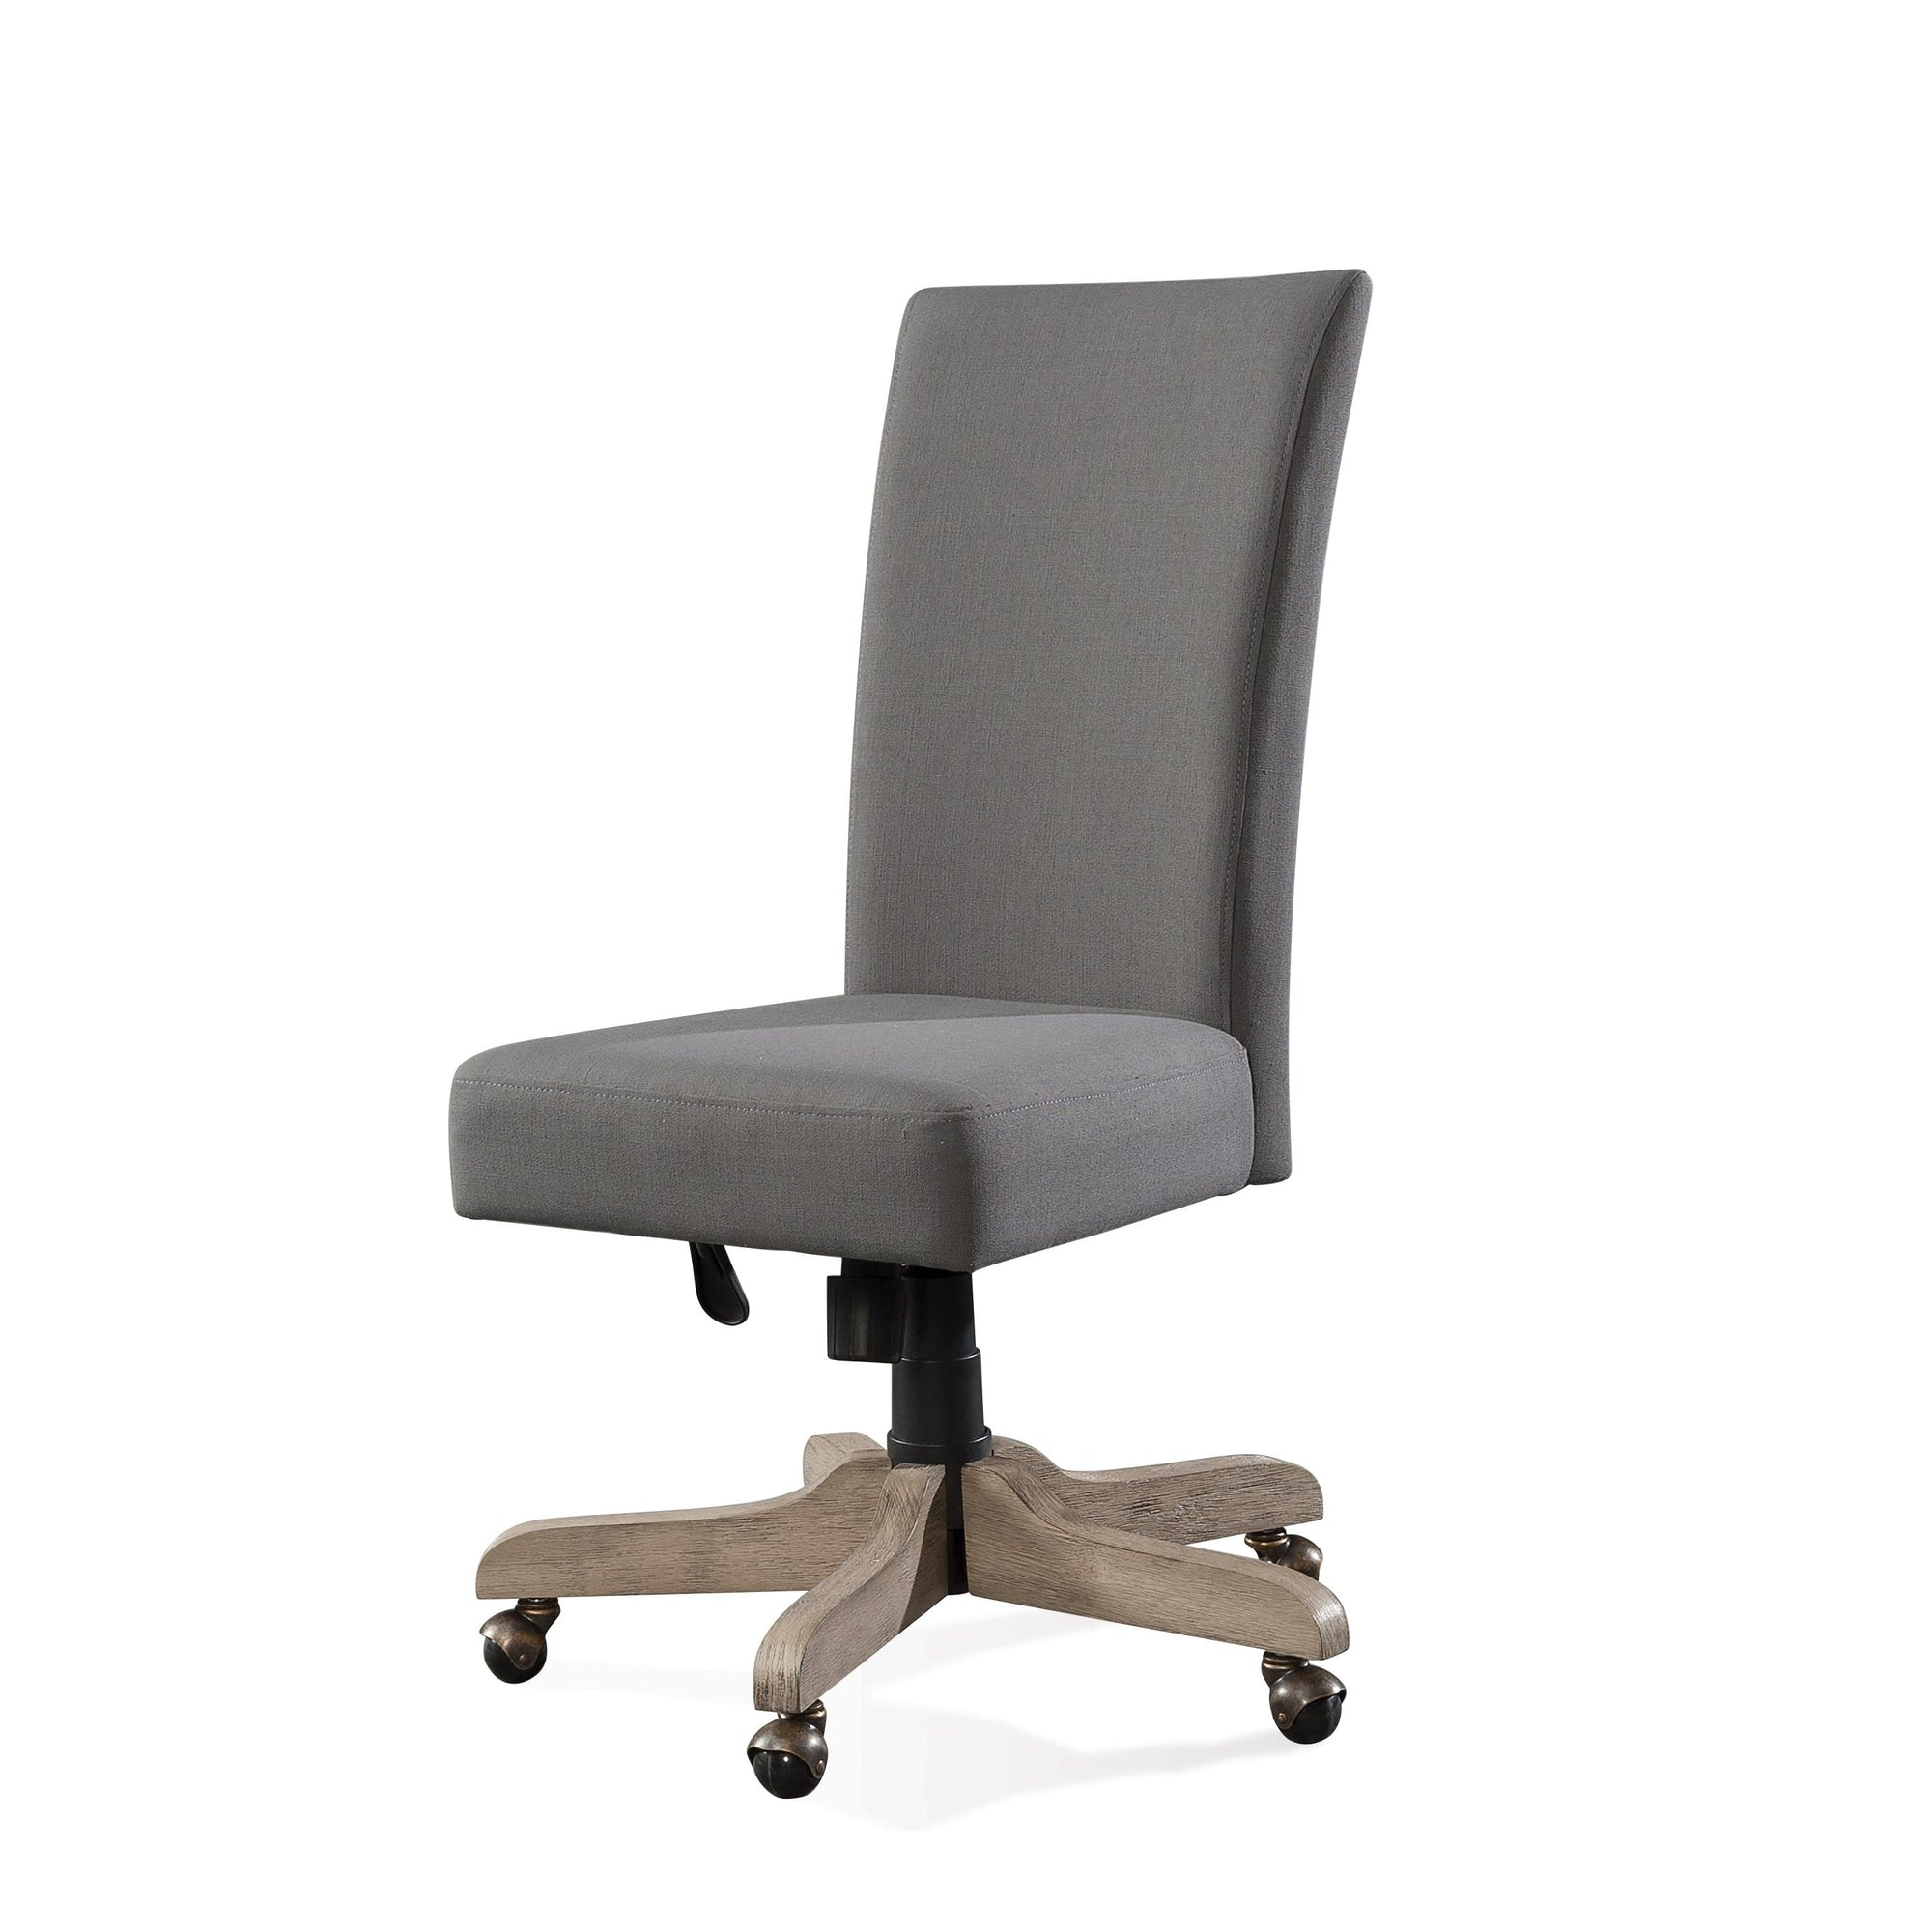 Perspectives Upholstered Back Desk Chair